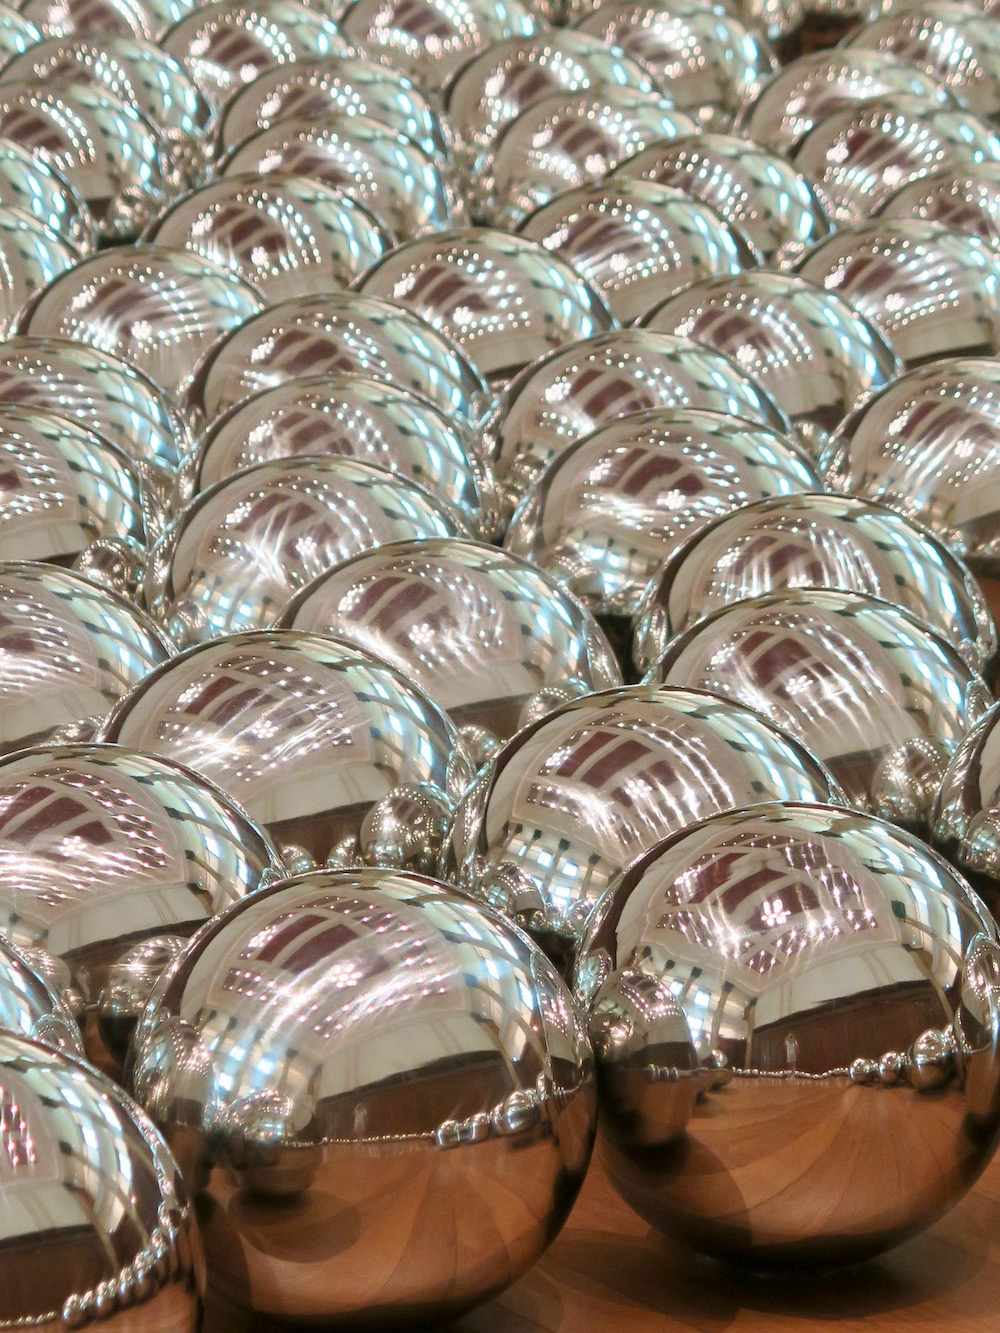 Repetition of balls |curlytraveller.com